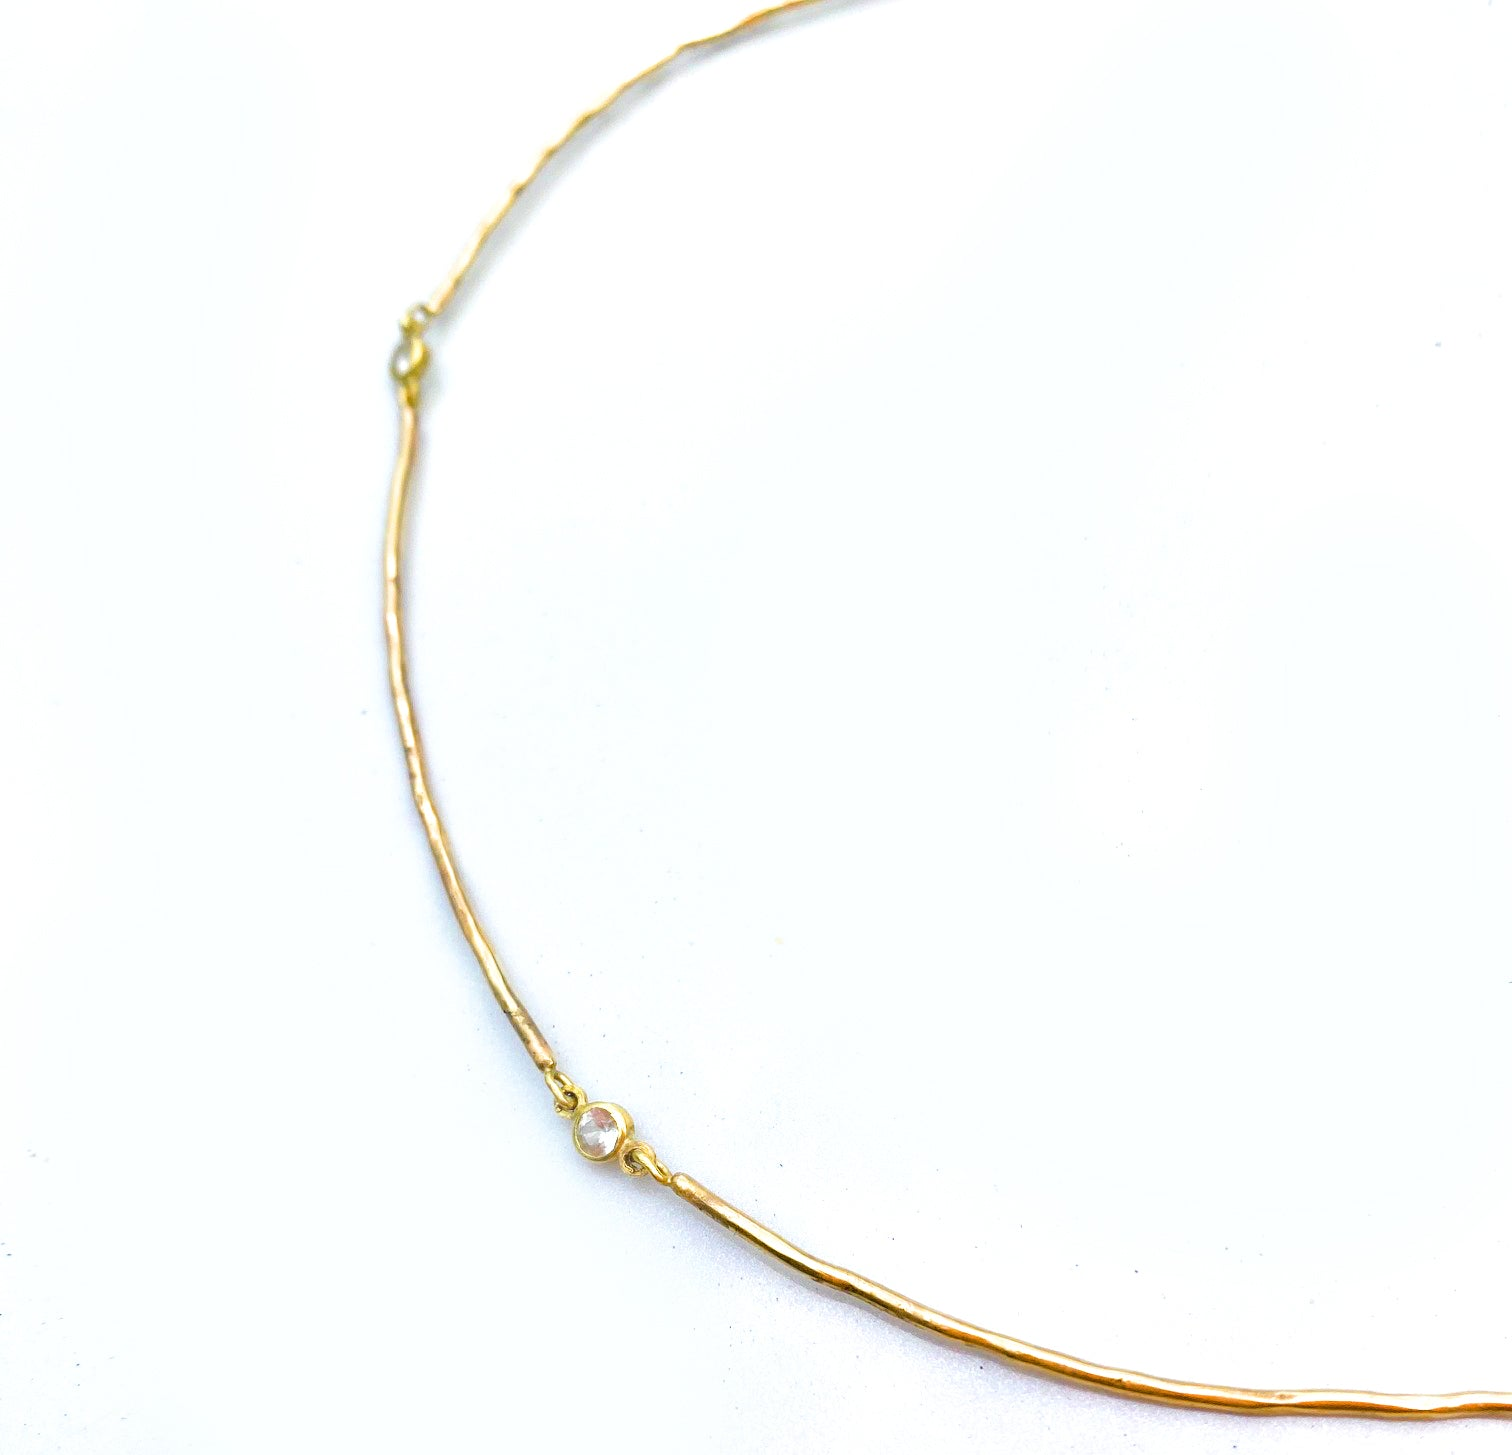 The Featherweight Twig Necklace